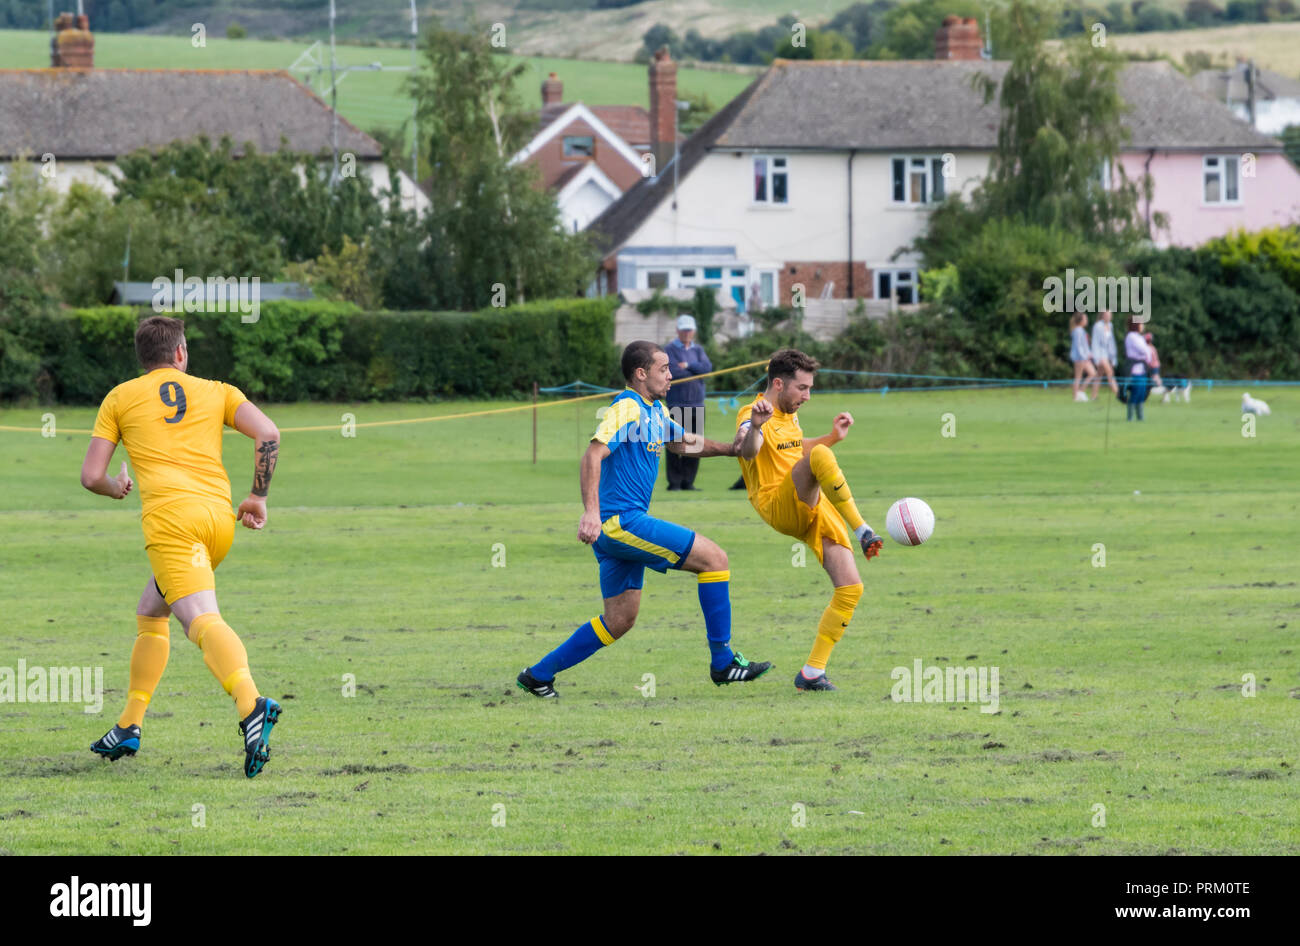 Players kicking a ball during a Saturday league football match with local amateur teams in West Sussex, England, UK. - Stock Image